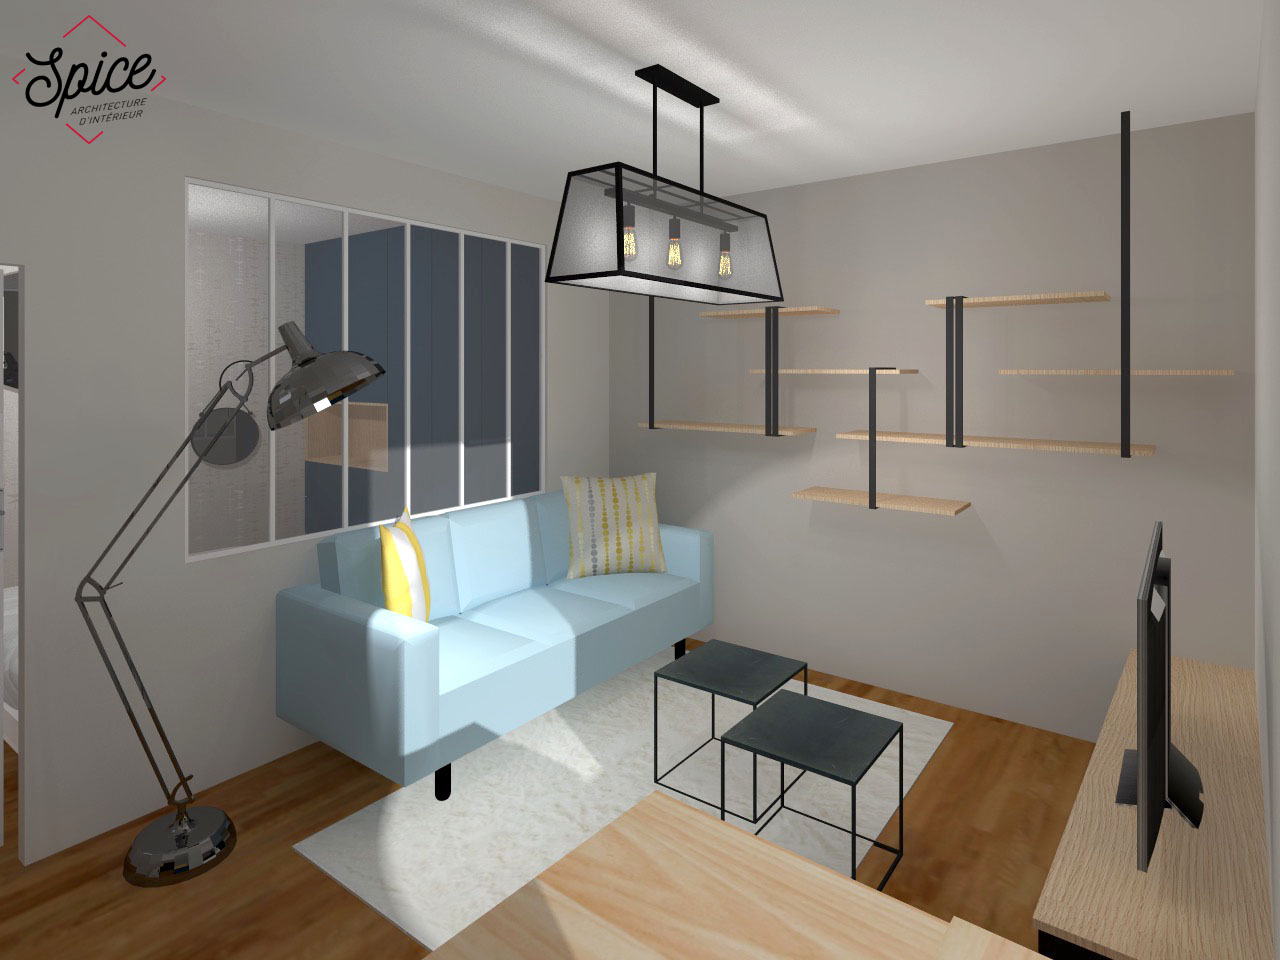 Architecte d intrieur strasbourg excellent contacter with architecte d intrieur strasbourg - Etude pour devenir architecte ...